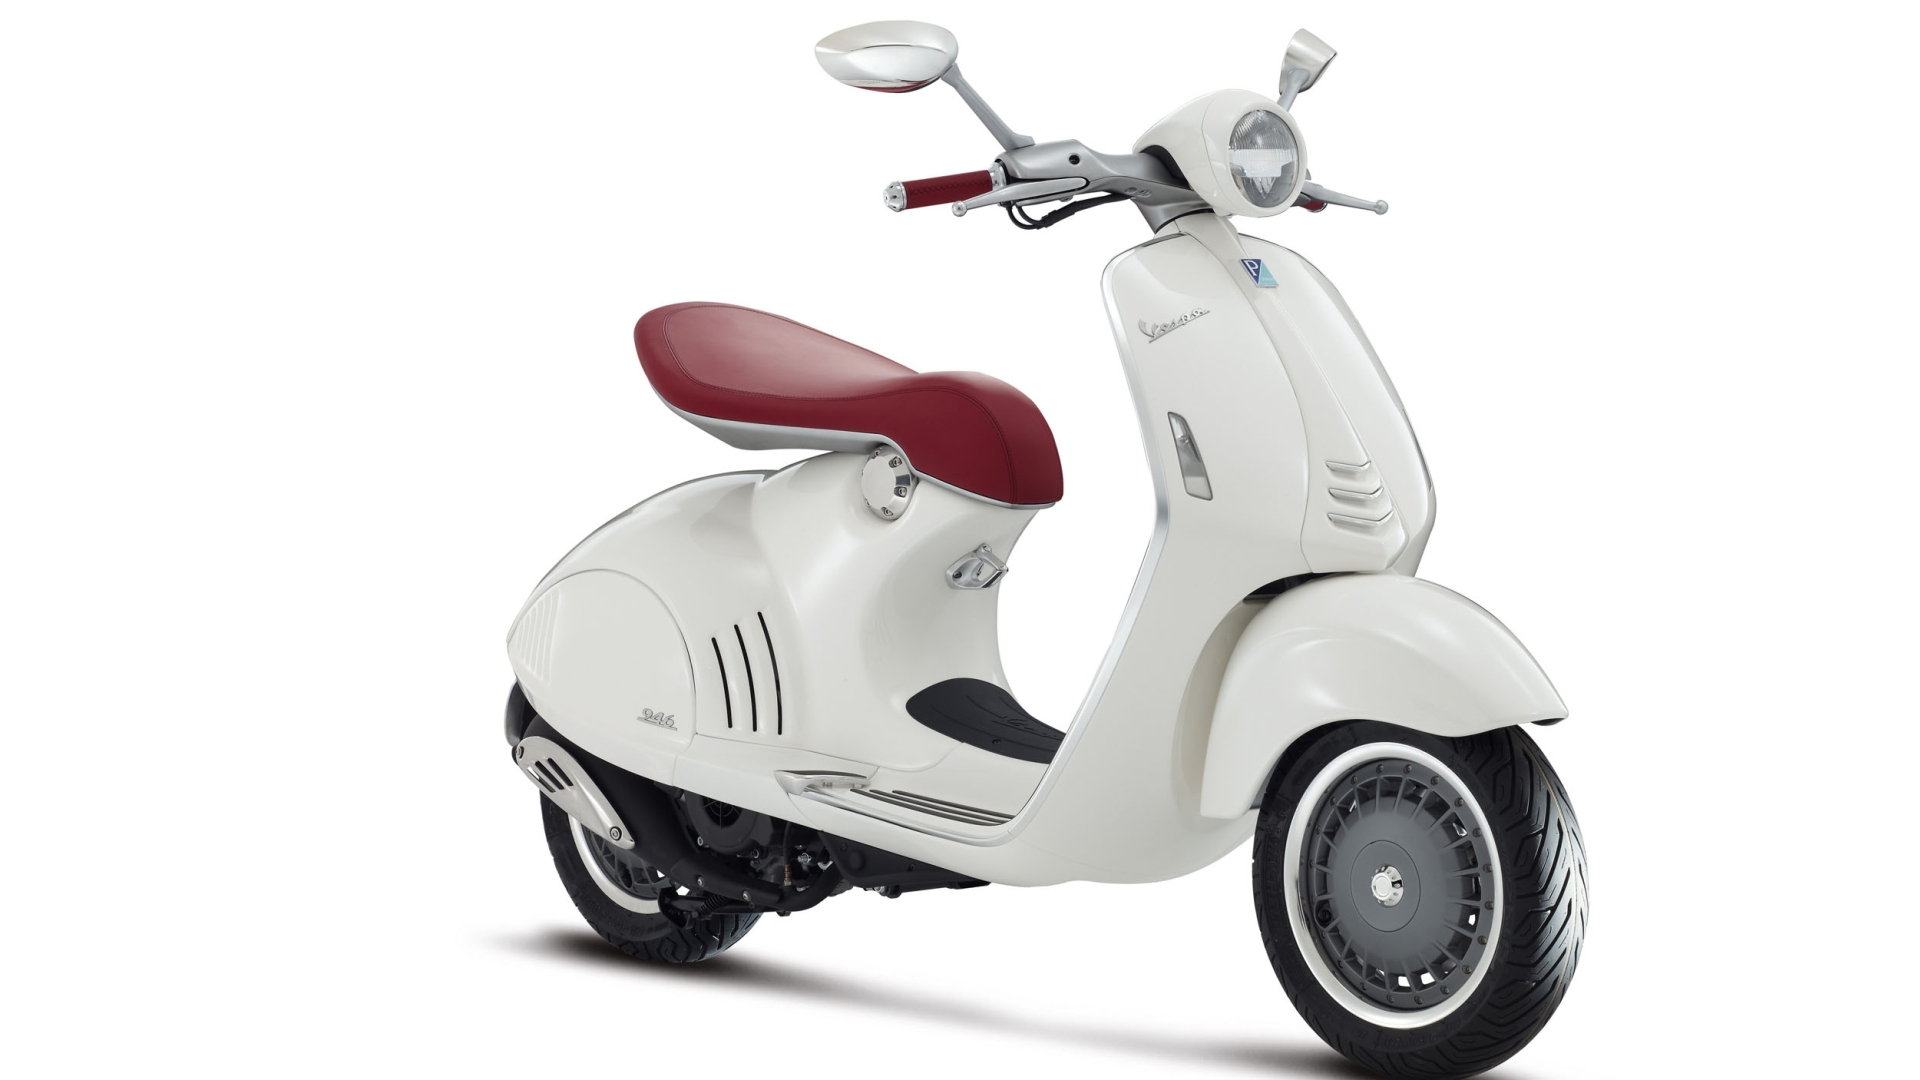 2013 Vespa 946 A Modern Tribute To The Scooters Of Yore Autoevolution